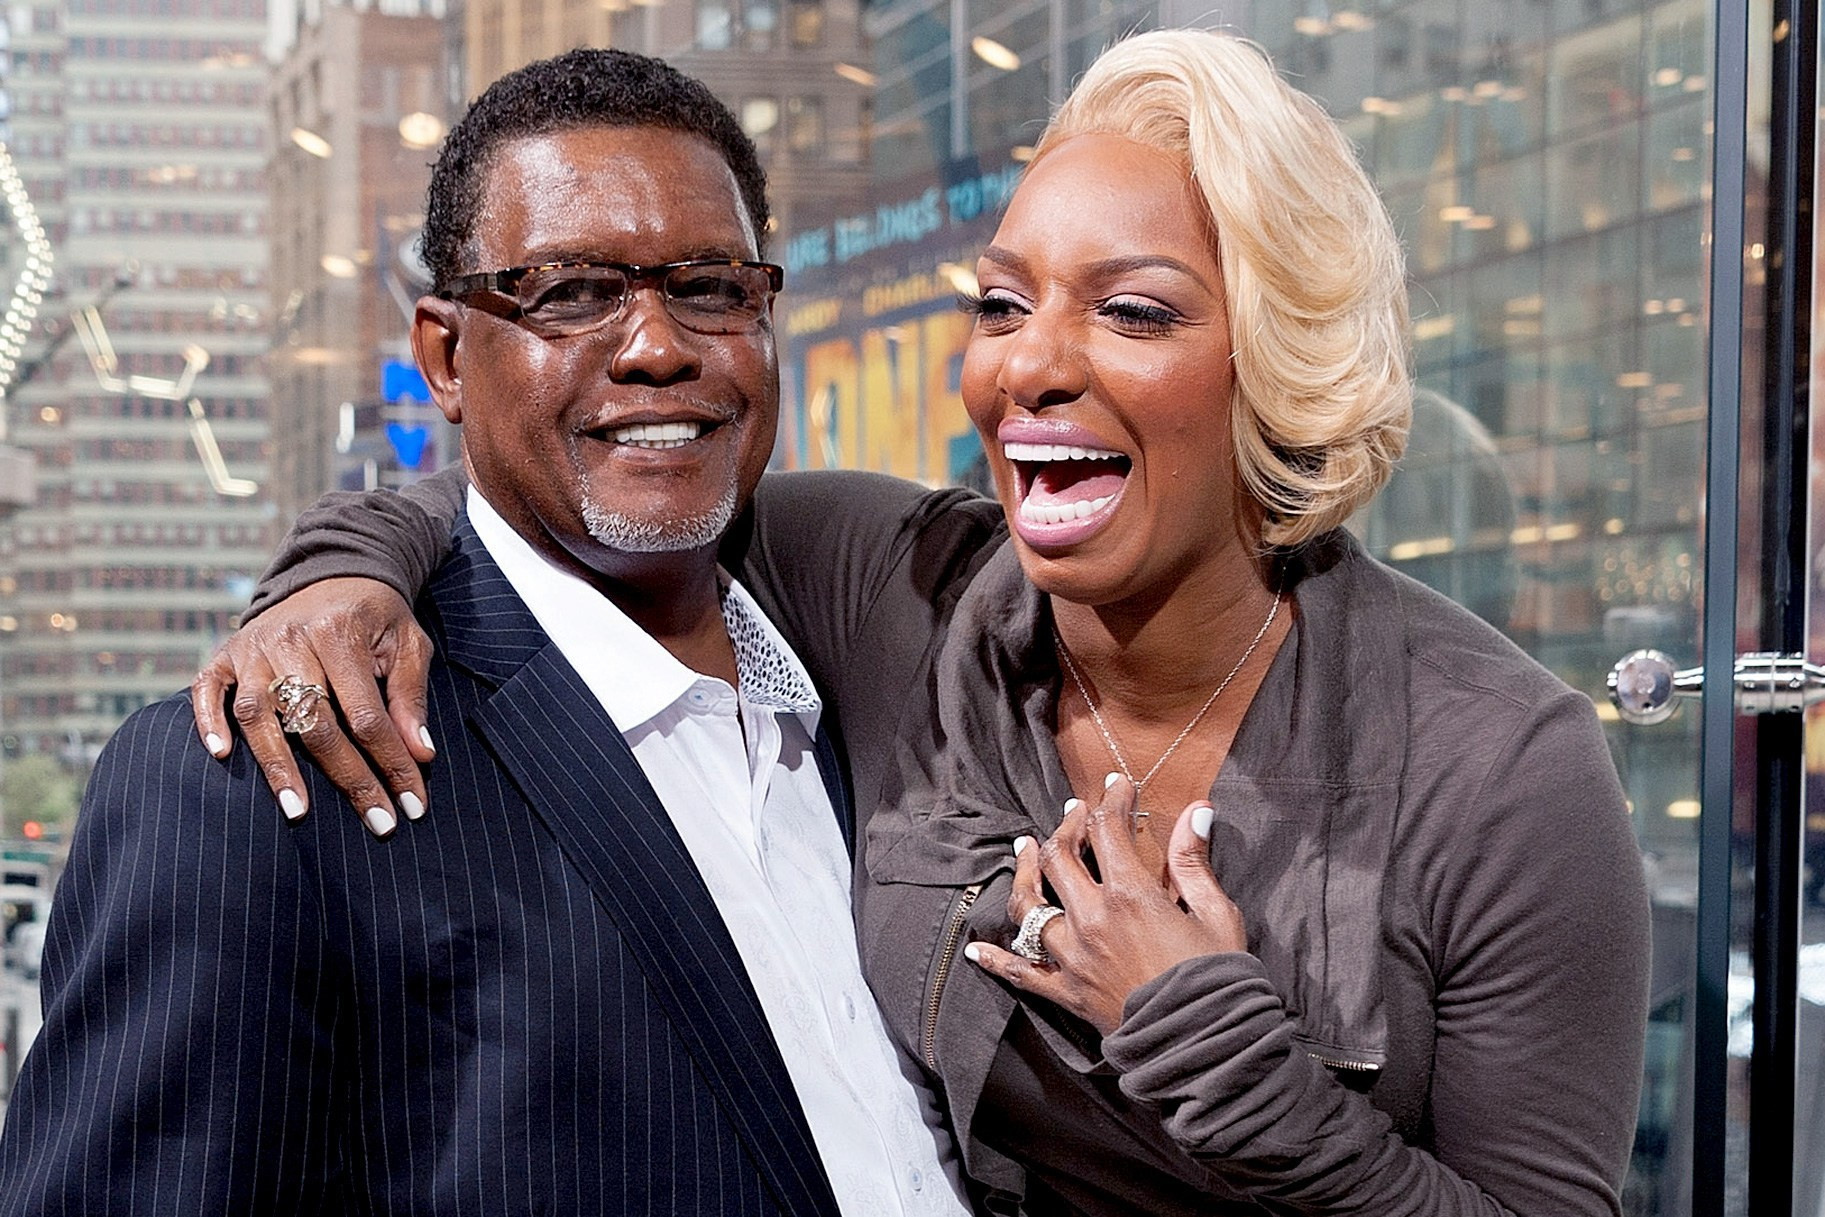 NeNe Leakes Is Celebrating: Gregg Leakes Completed The Difficult 6 Months Of Chemo - Watch The Emotional Videos That Had Fans Crying